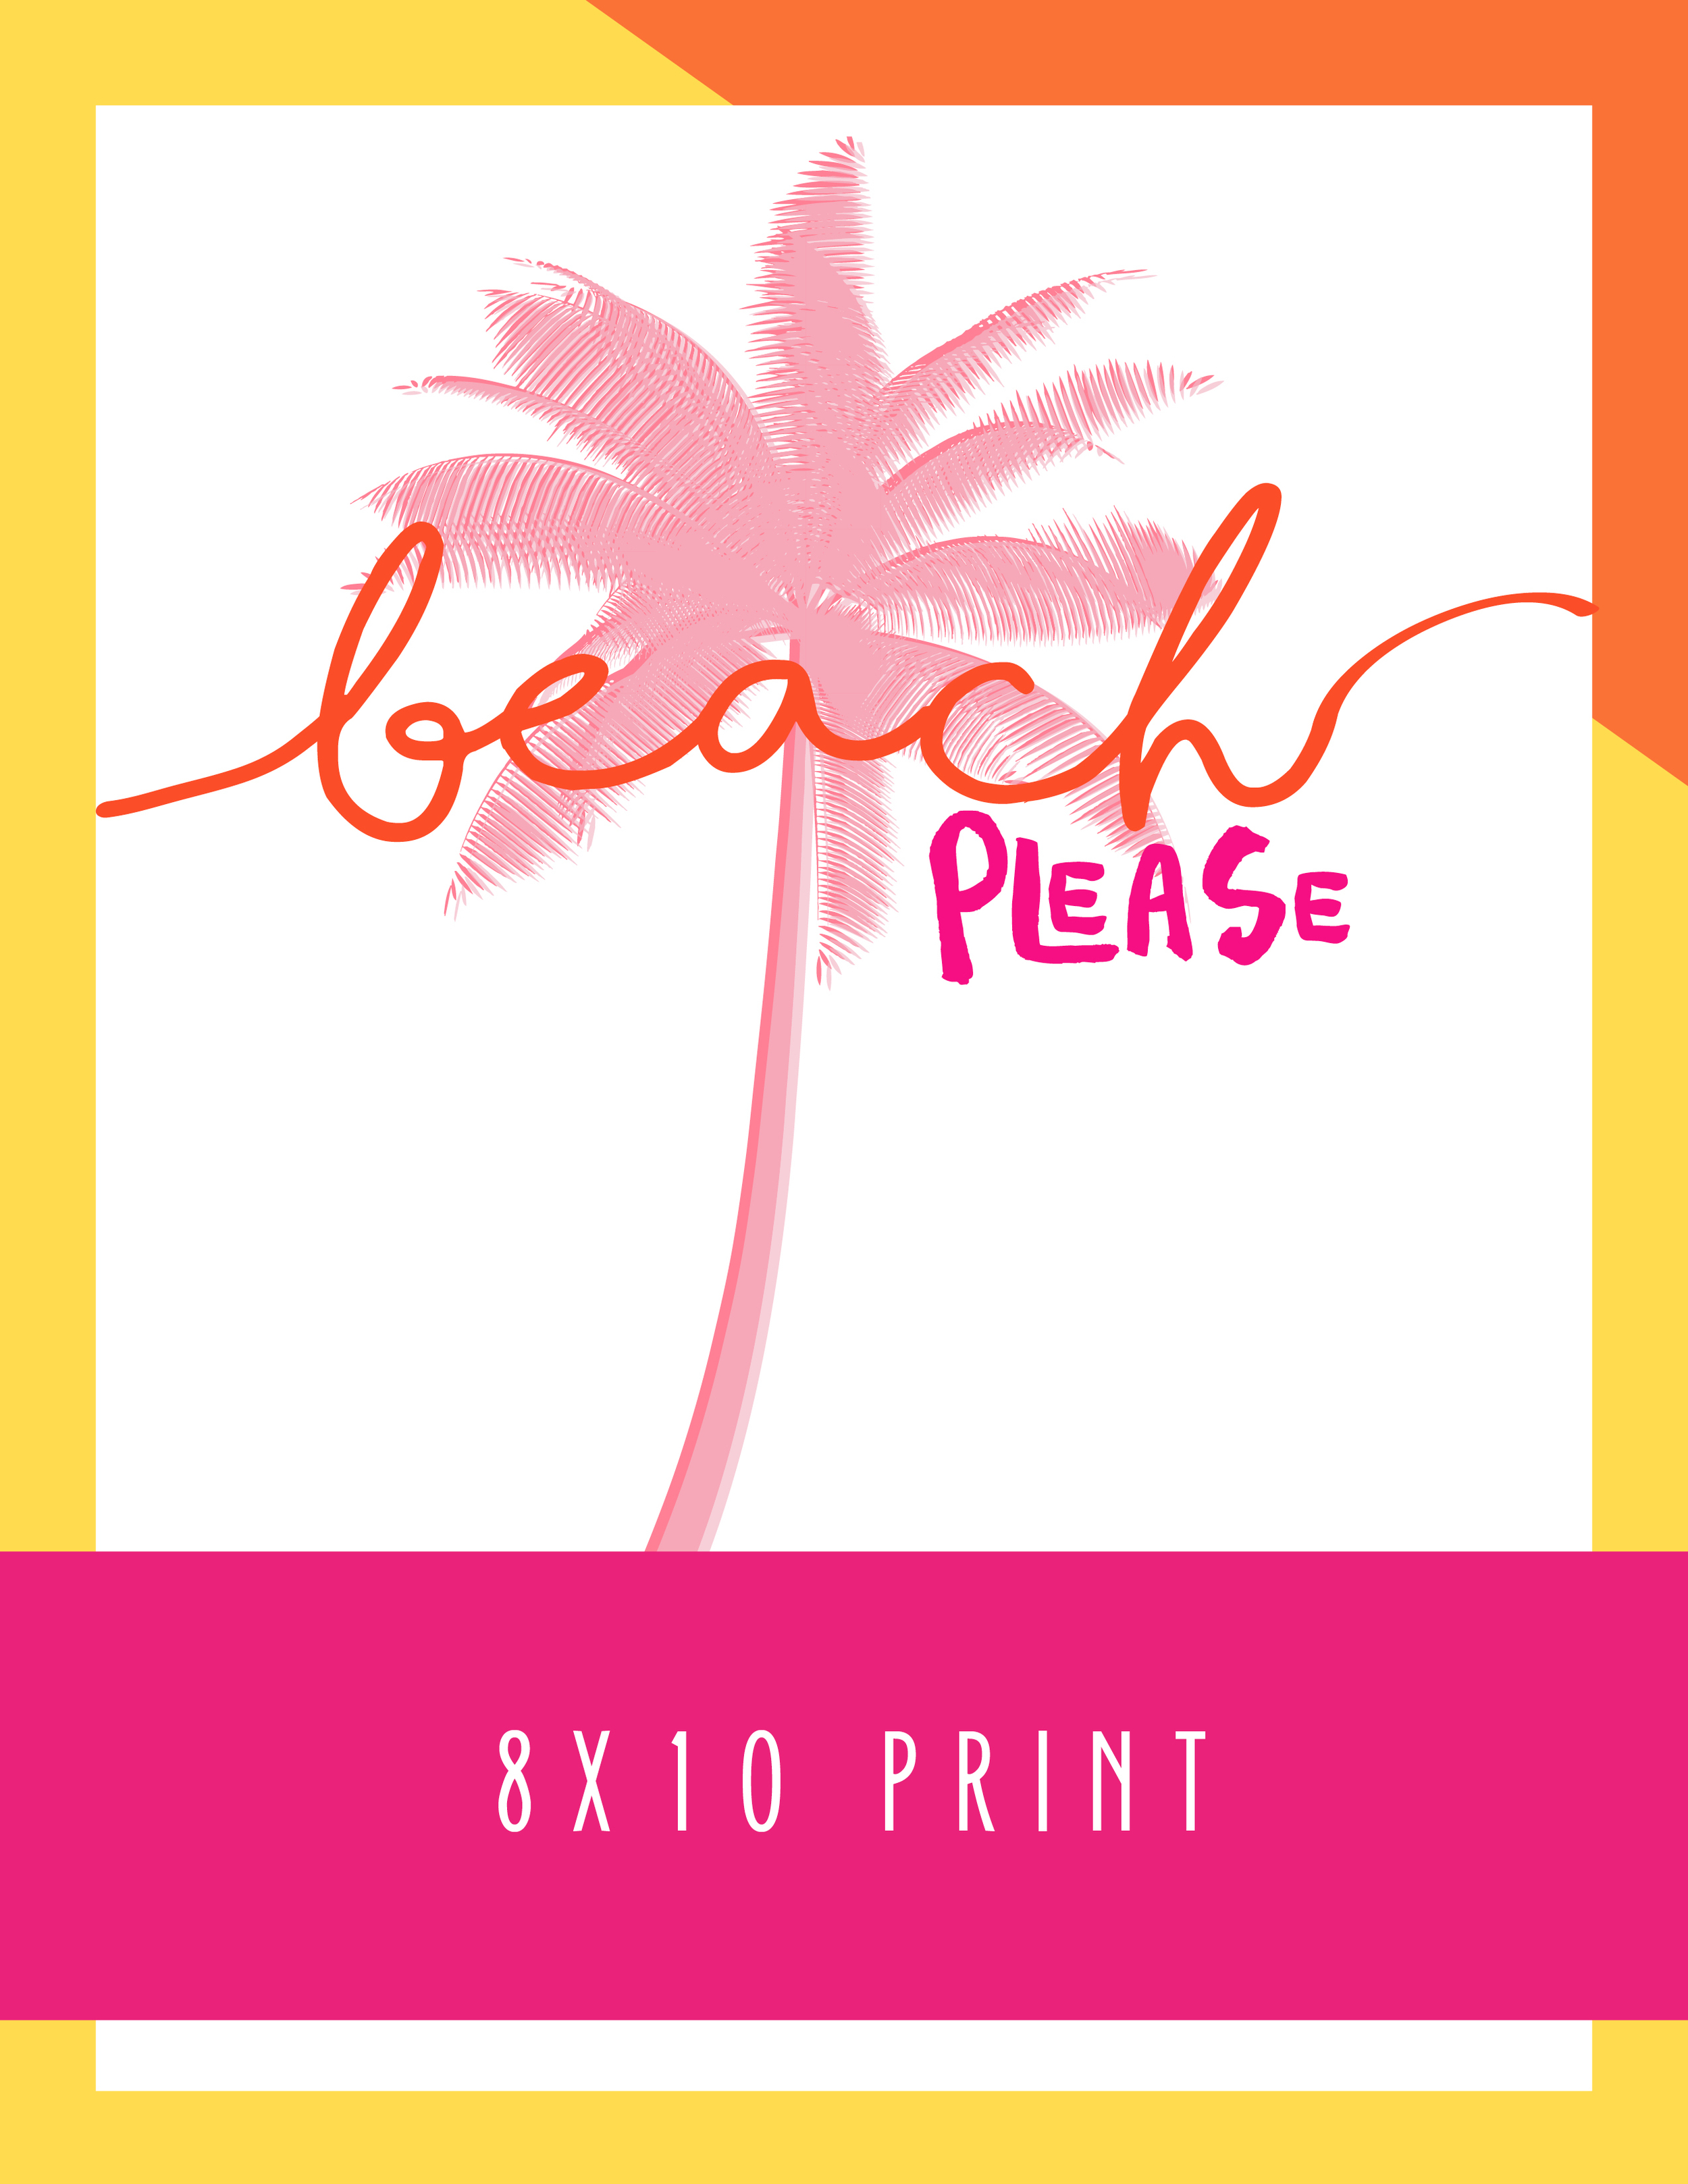 Bold & Pop Freebies Beach Please 8x10 Print